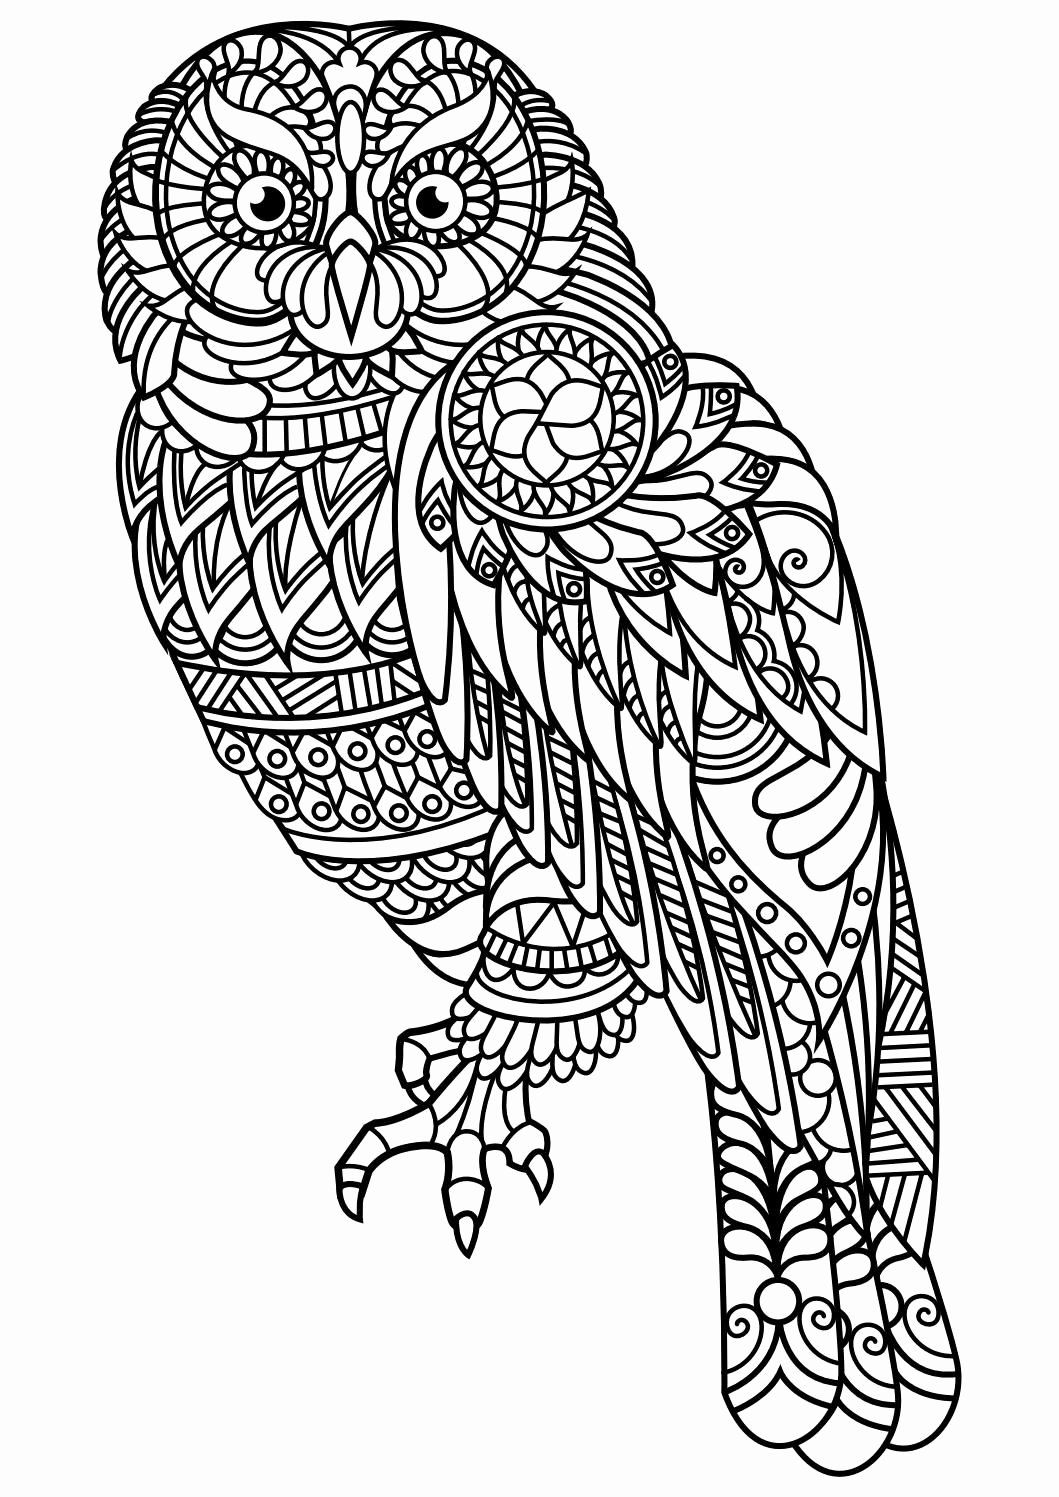 Animal Coloring Sheets Pdf New Marvelous Animal Coloring Sheets Image Ideas Books Adult In 2020 Owl Coloring Pages Animal Coloring Books Printable Adult Coloring Pages